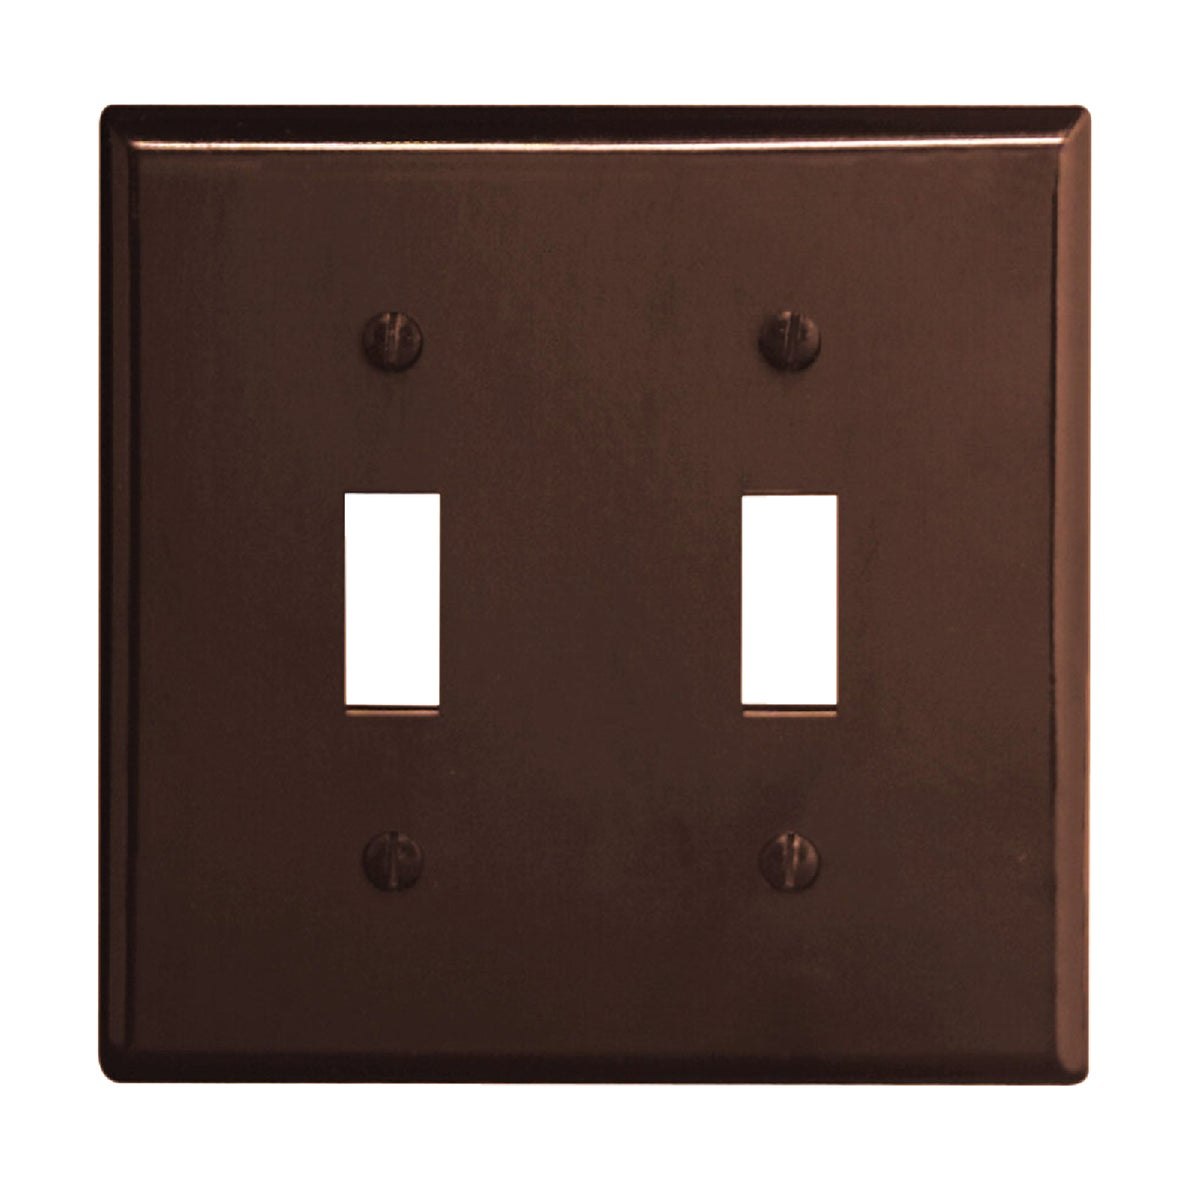 BRN 2-TOGGLE WALL PLATE